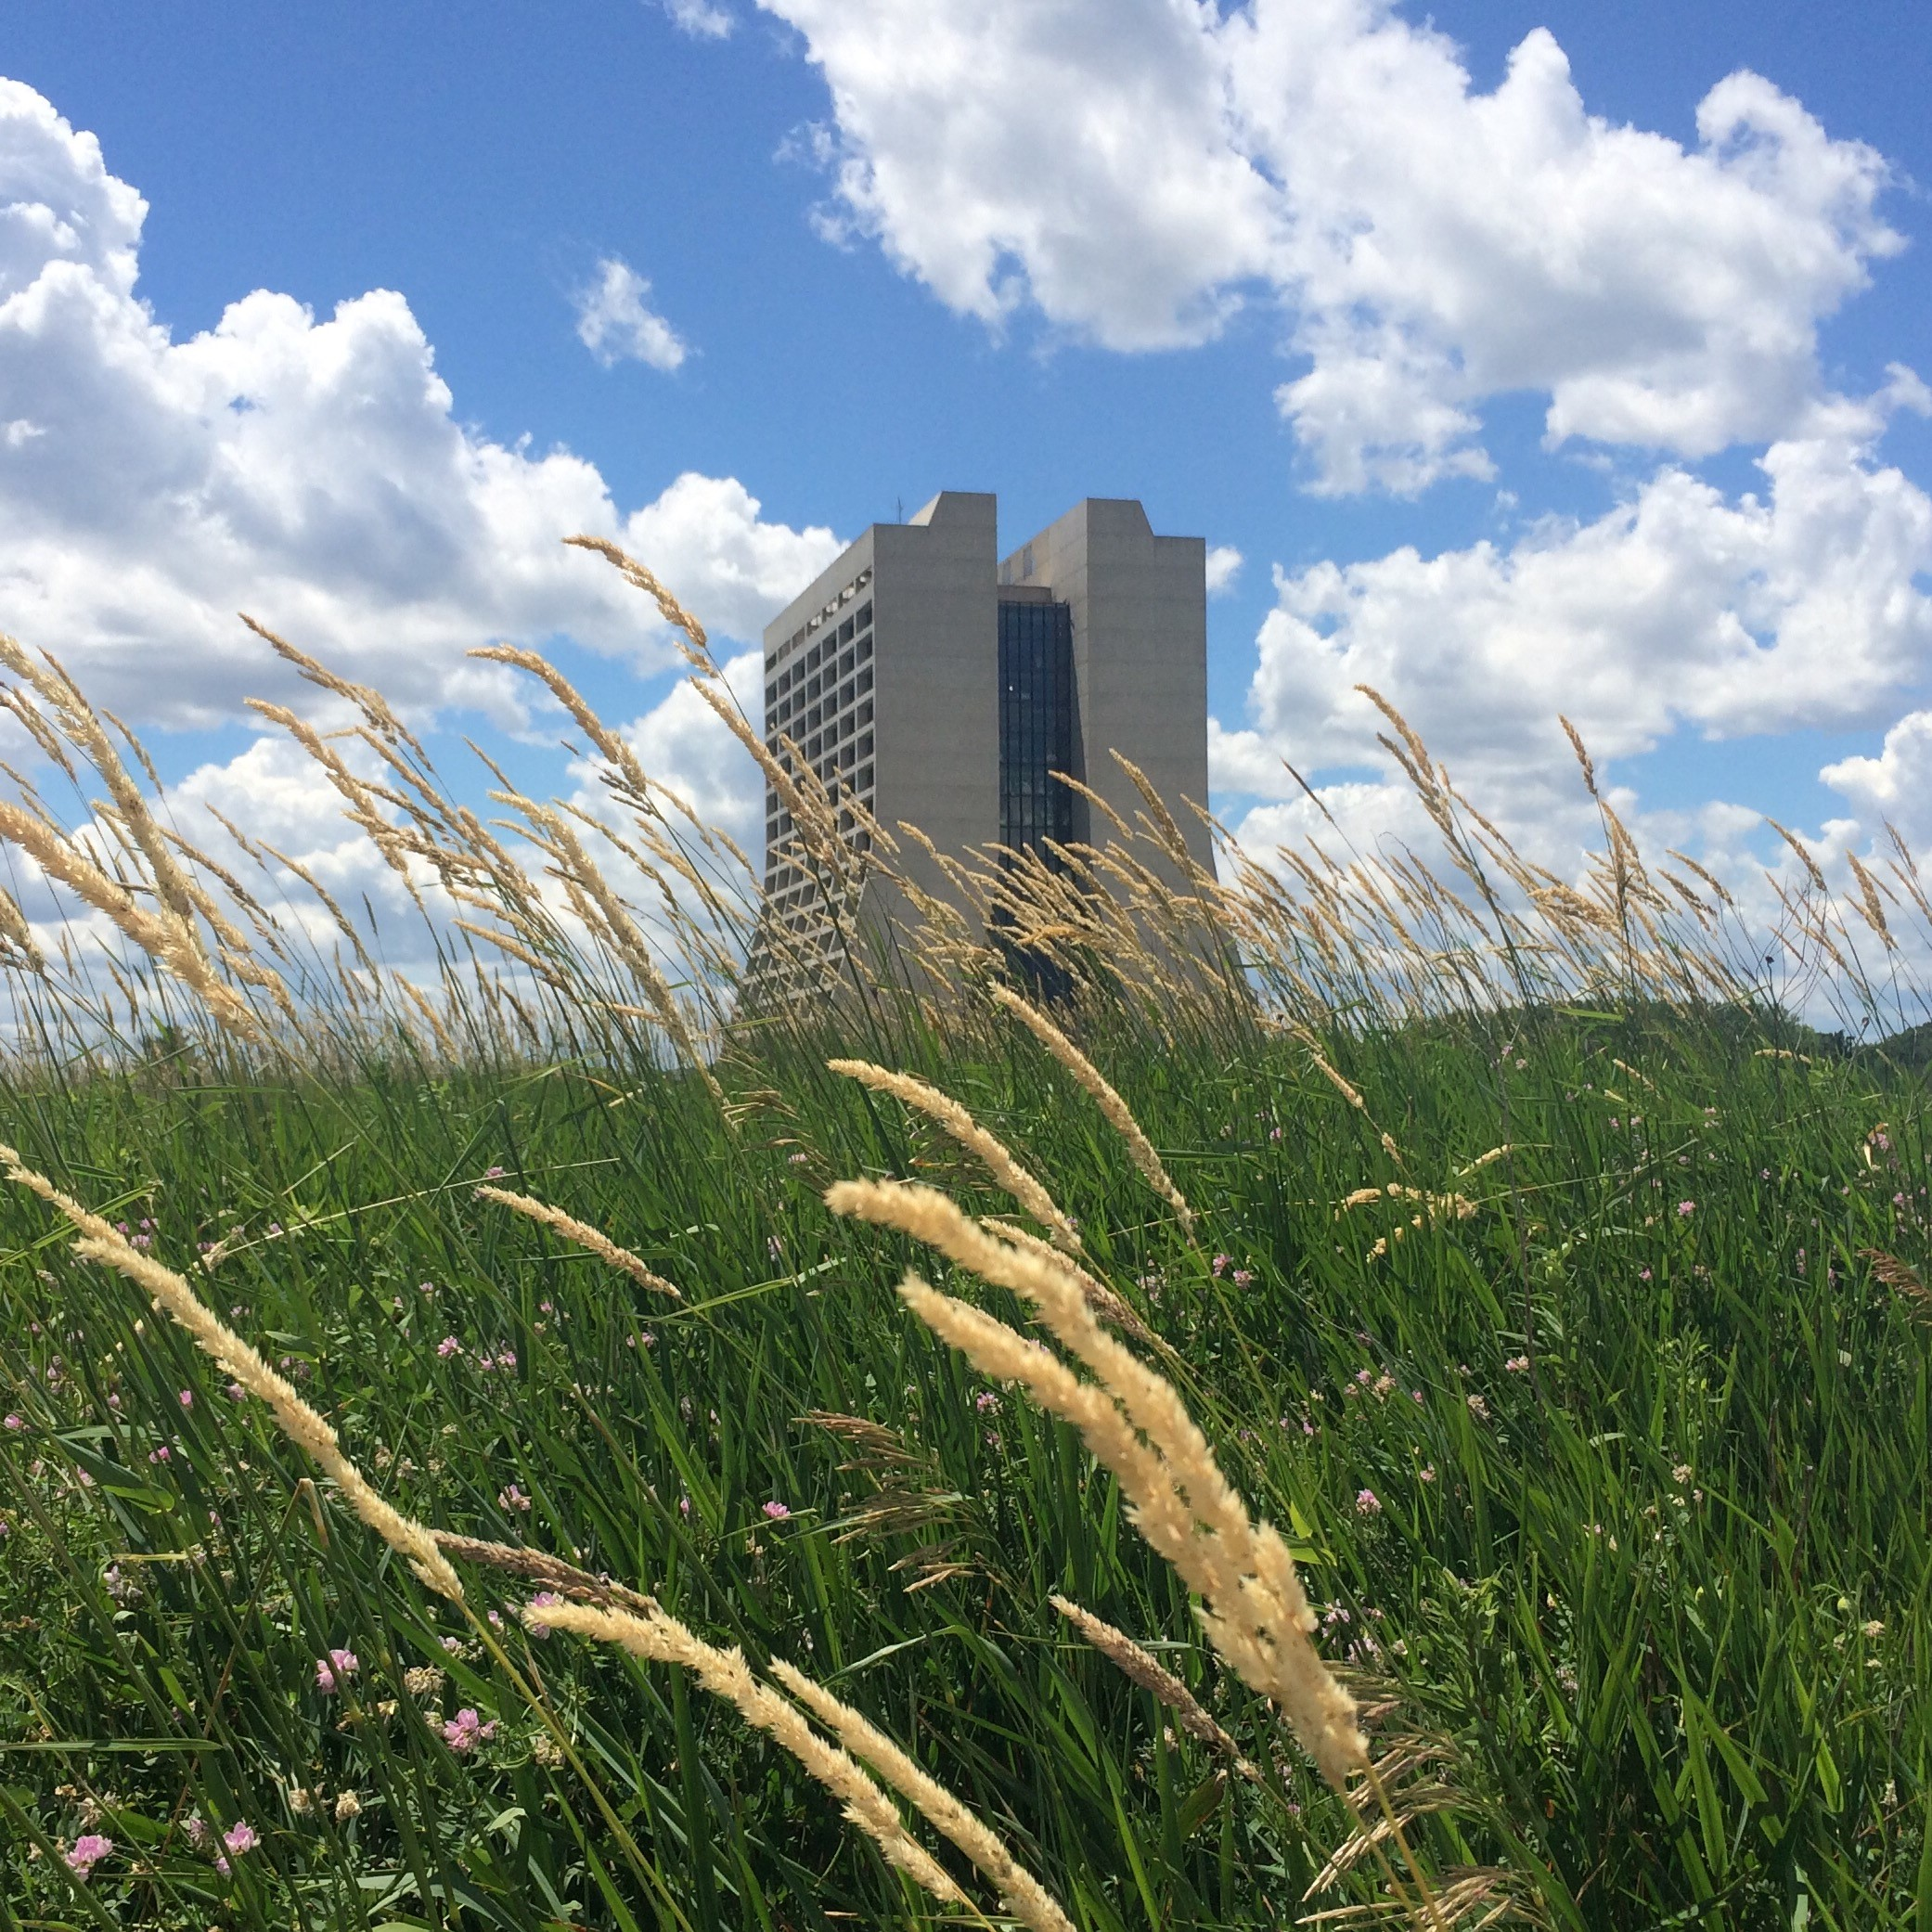 nature, sky, cloud, grass, prairie, landscape, building, Wilson Hall